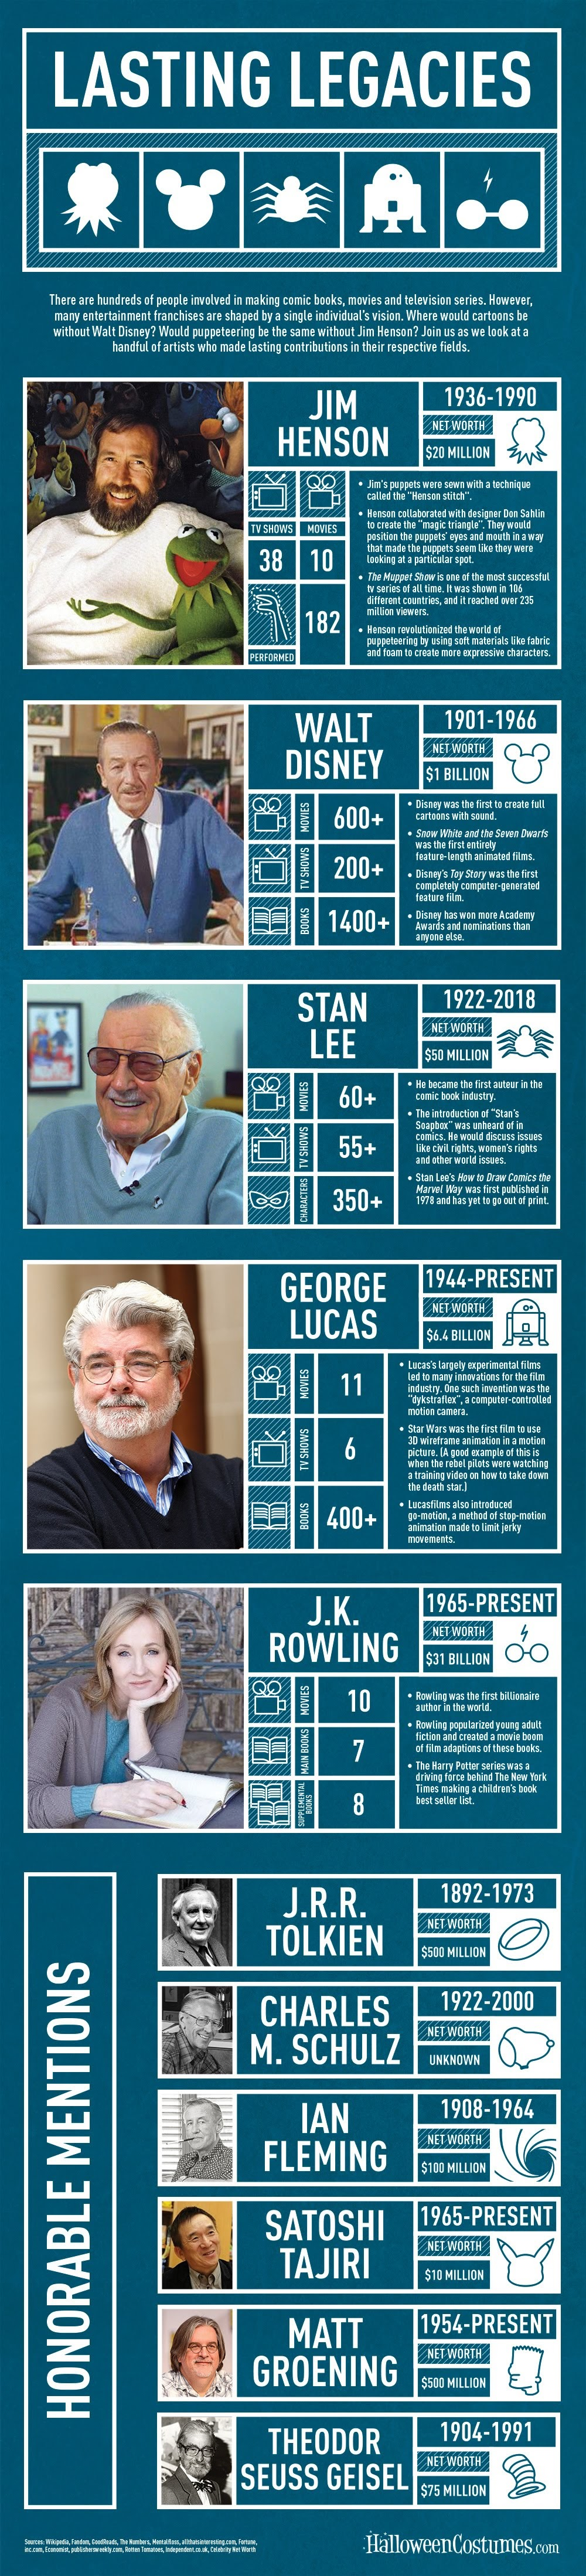 The Men and Women Who Influenced the Entertainment Industry #infographic